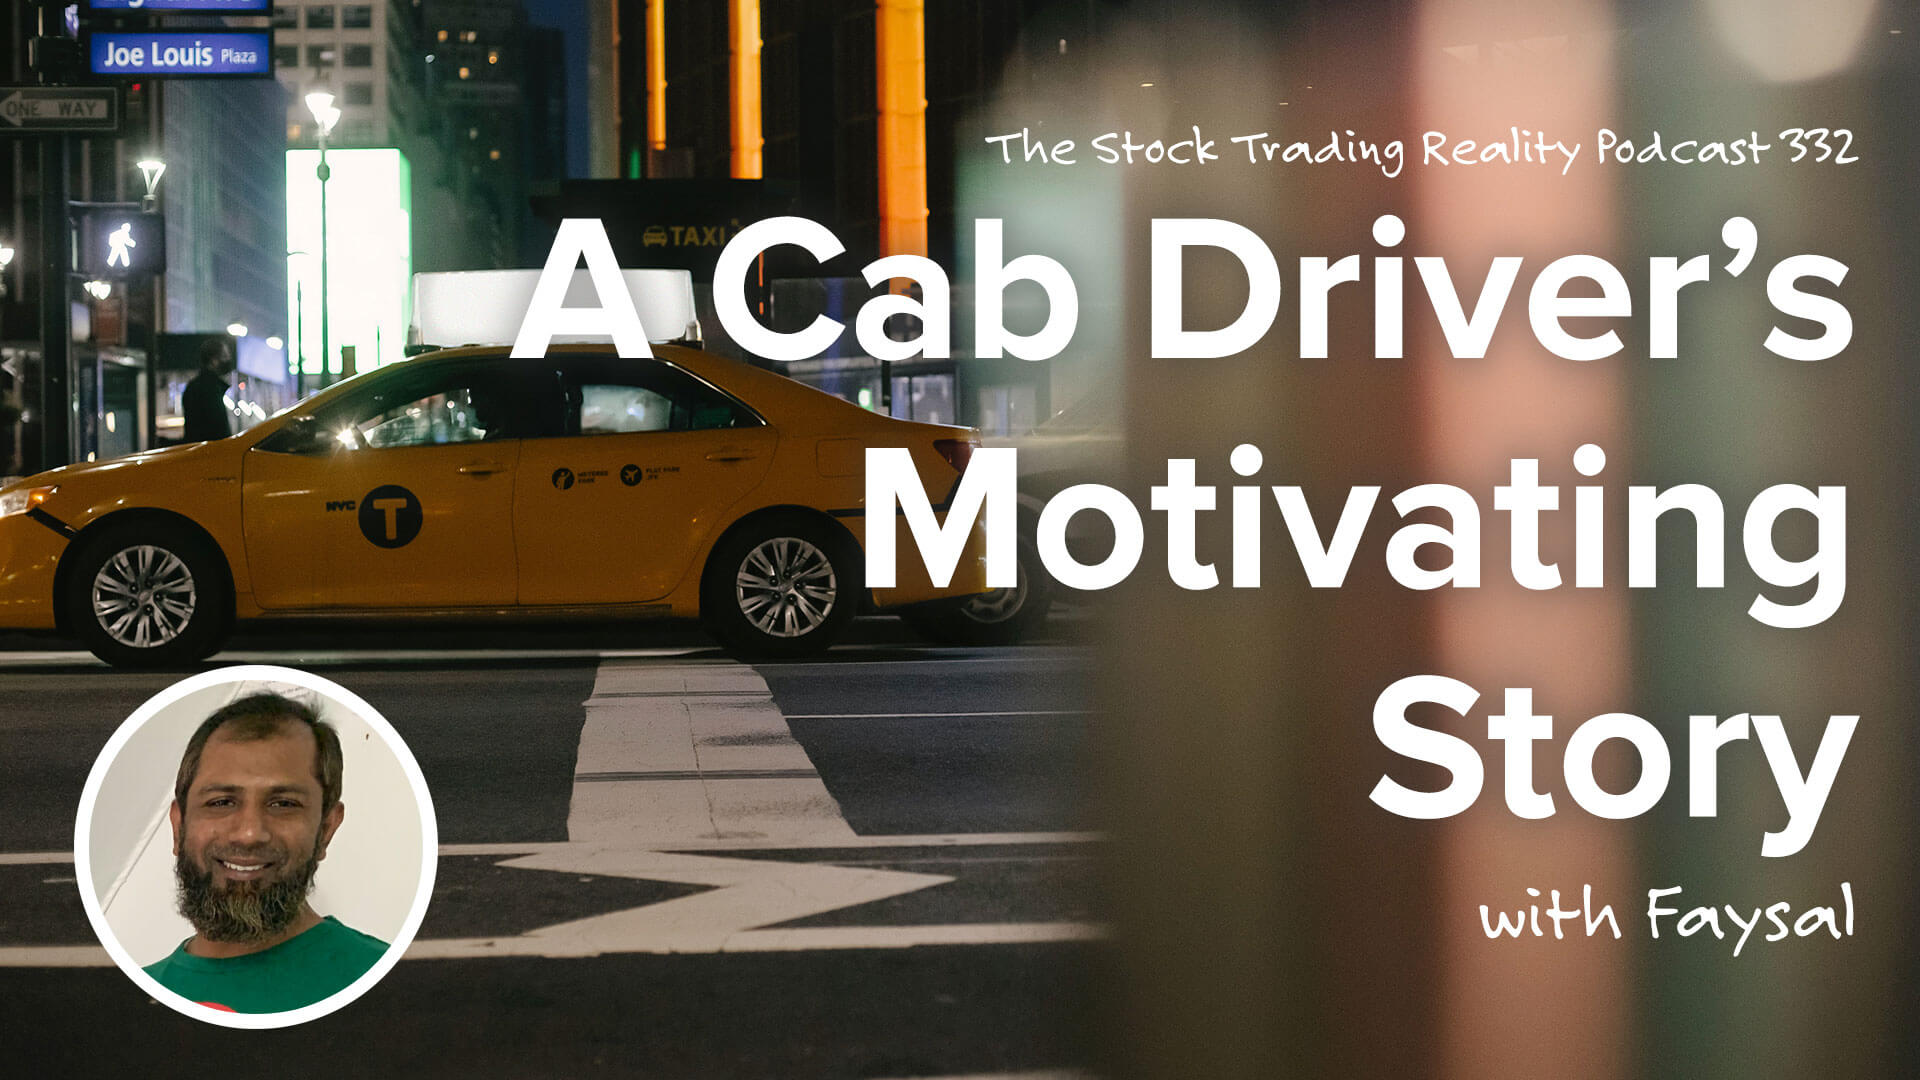 A NYC Taxi Cab Driver's Motivating Story   STR 332